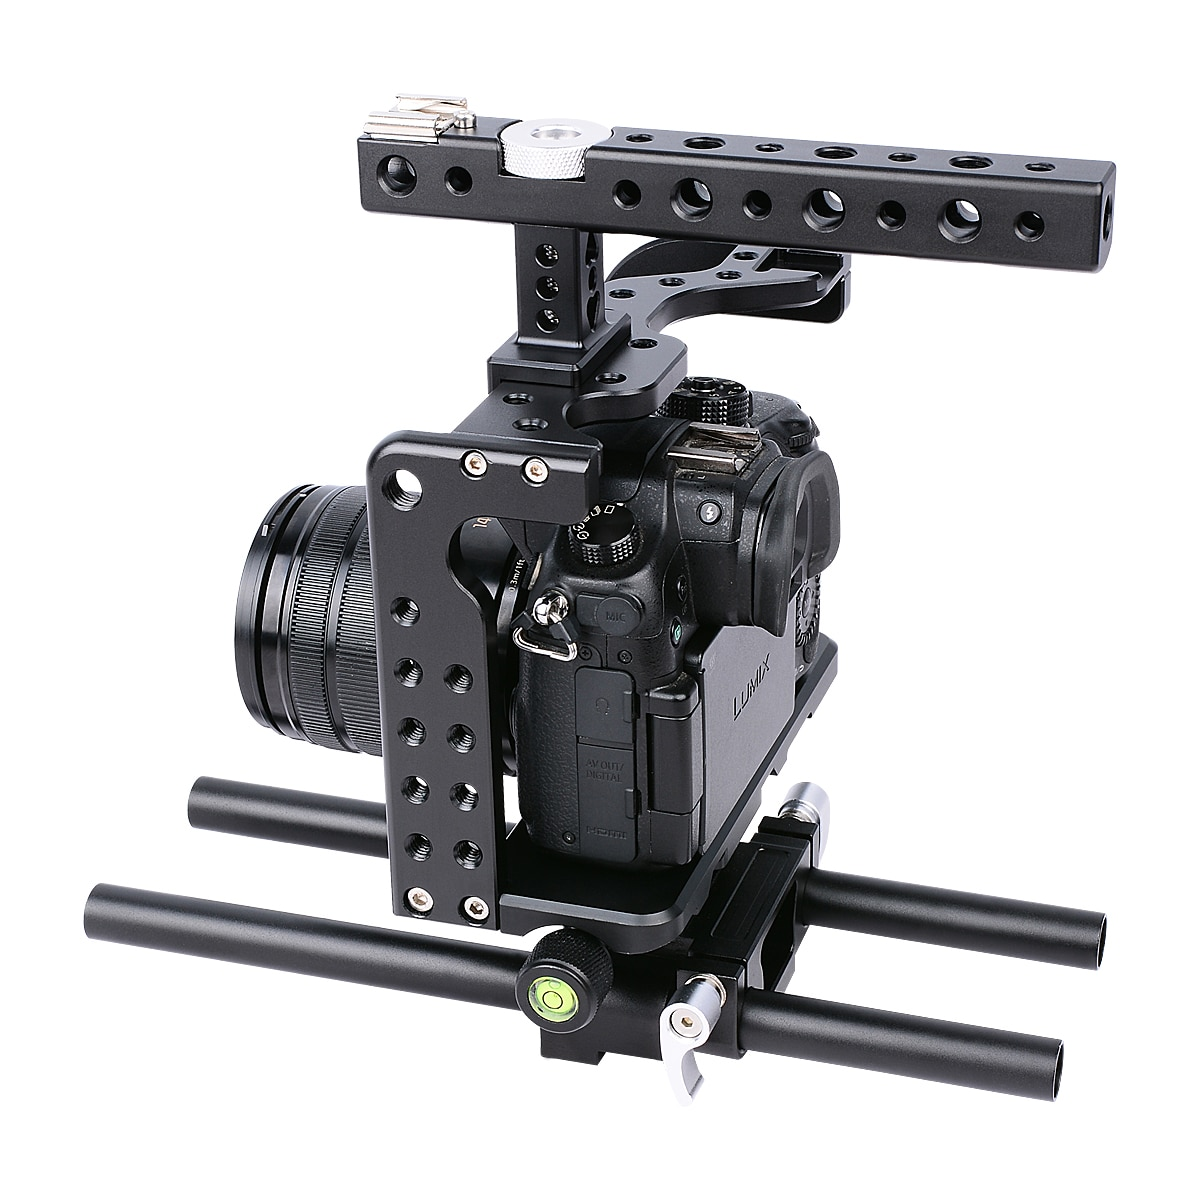 Yelangu C7 Camera Cage Metal Professional Camera Cages+Hand Grips Cold Shoes and Different Screw for Panasonic Lumix Gh5 Camera